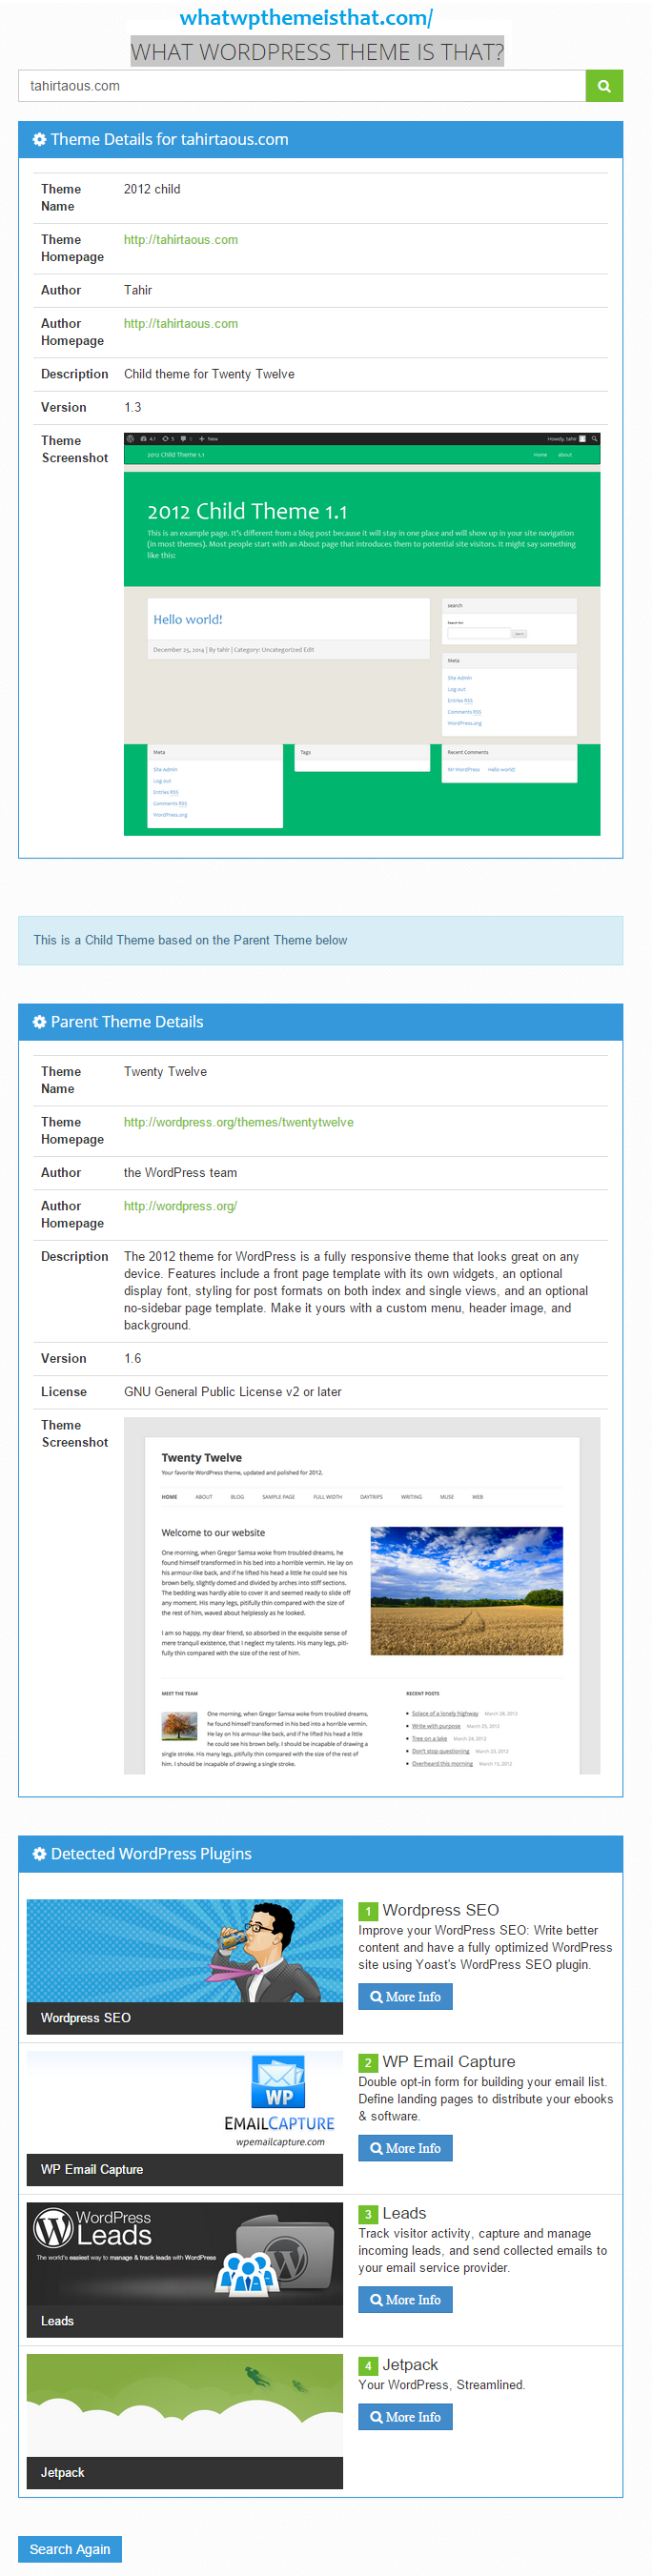 find out what theme a website is using